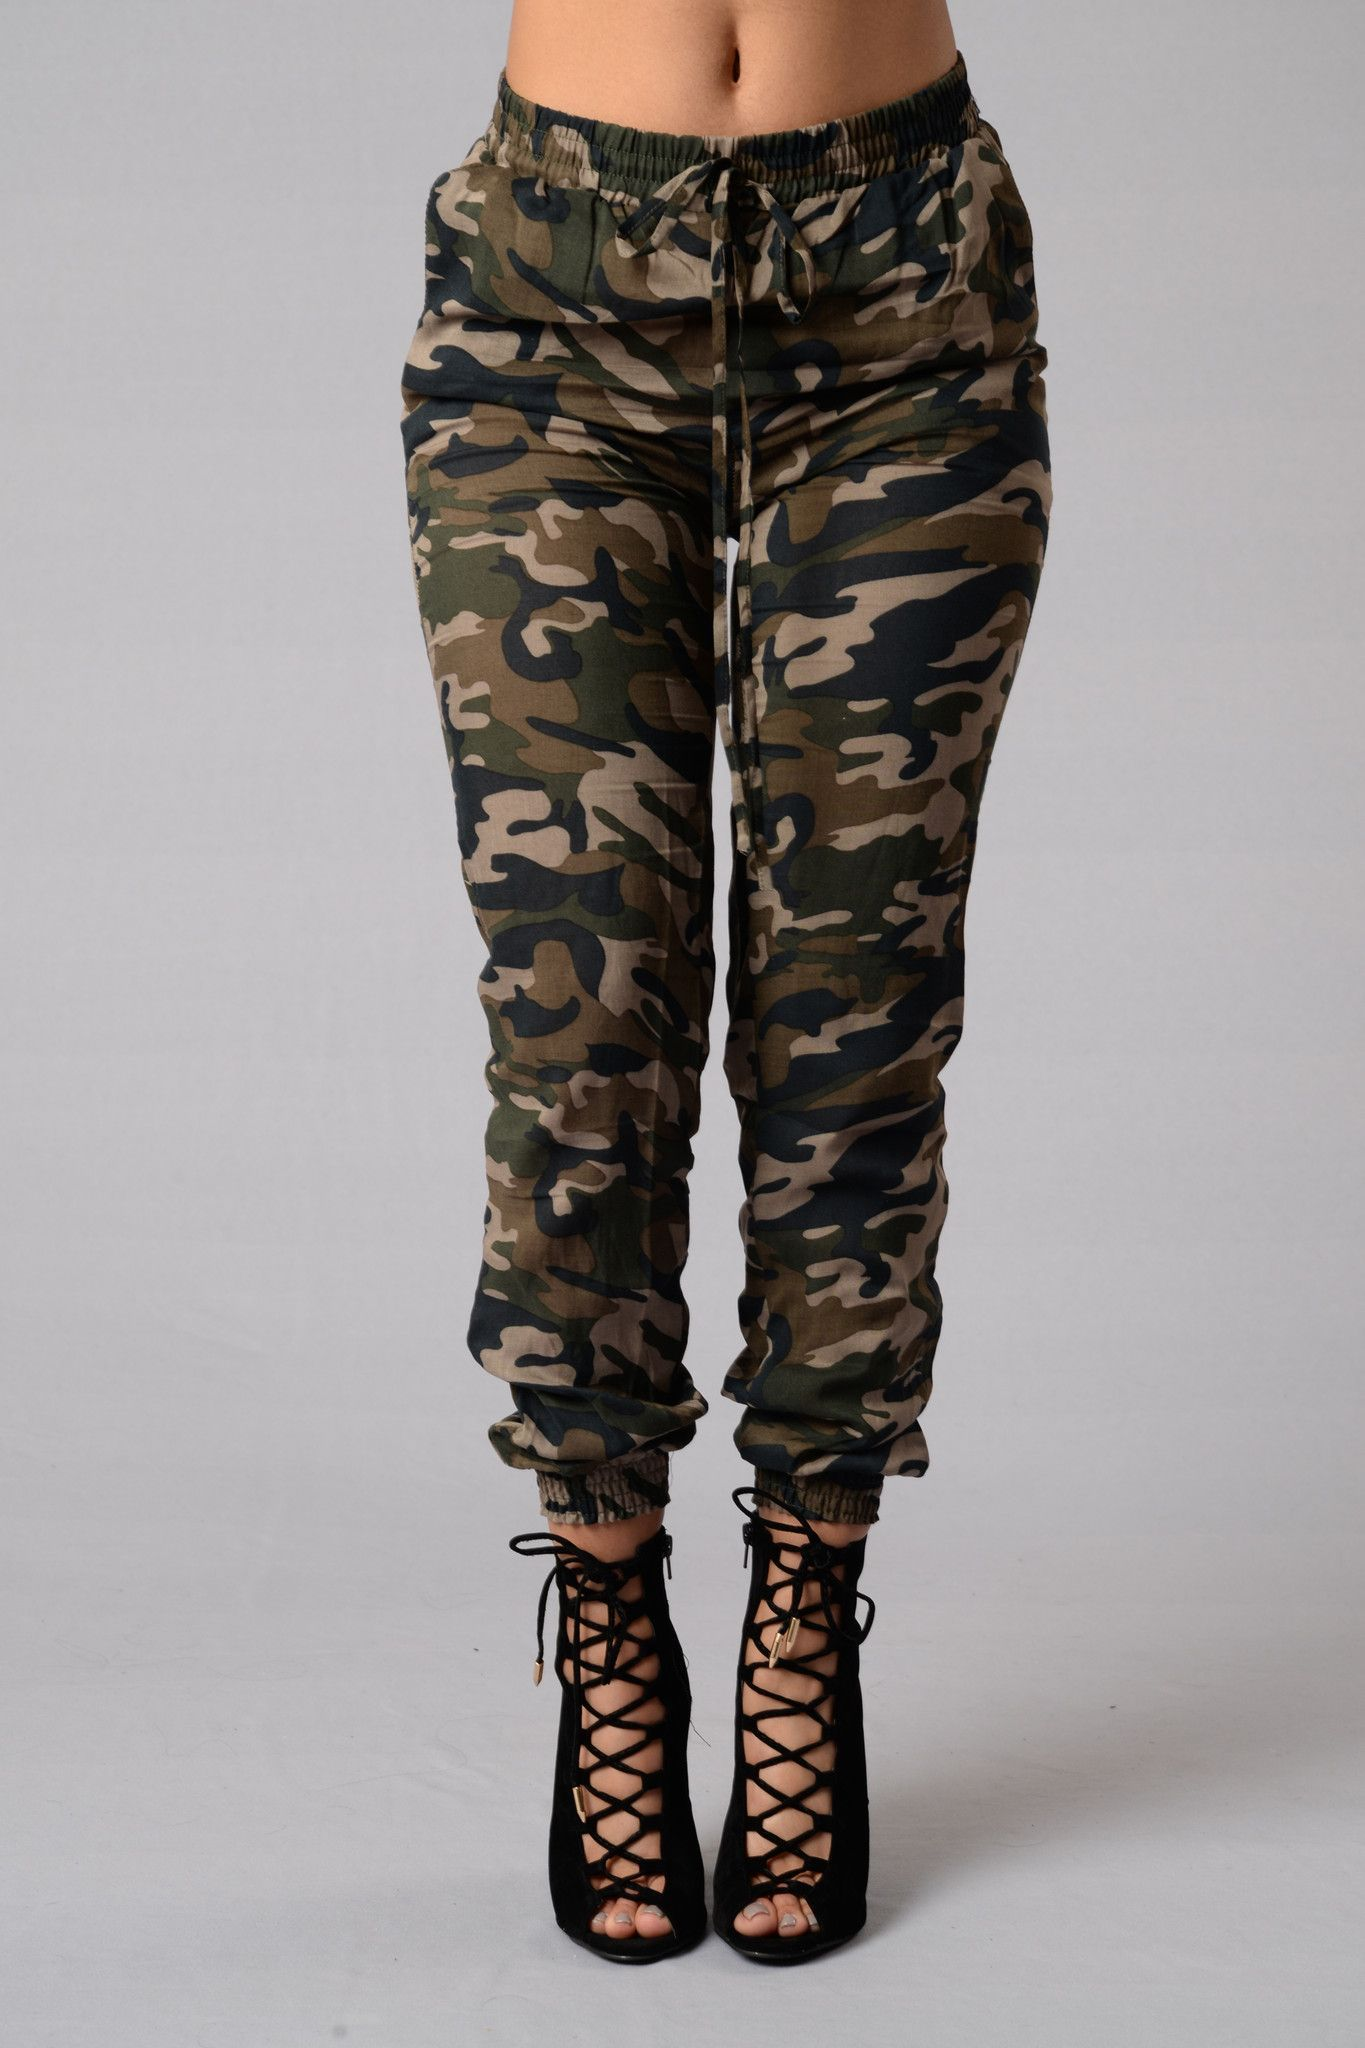 b7f28fa858ac6 Combat Pants | Just hanging Out | Camouflage pants, Army pants ...